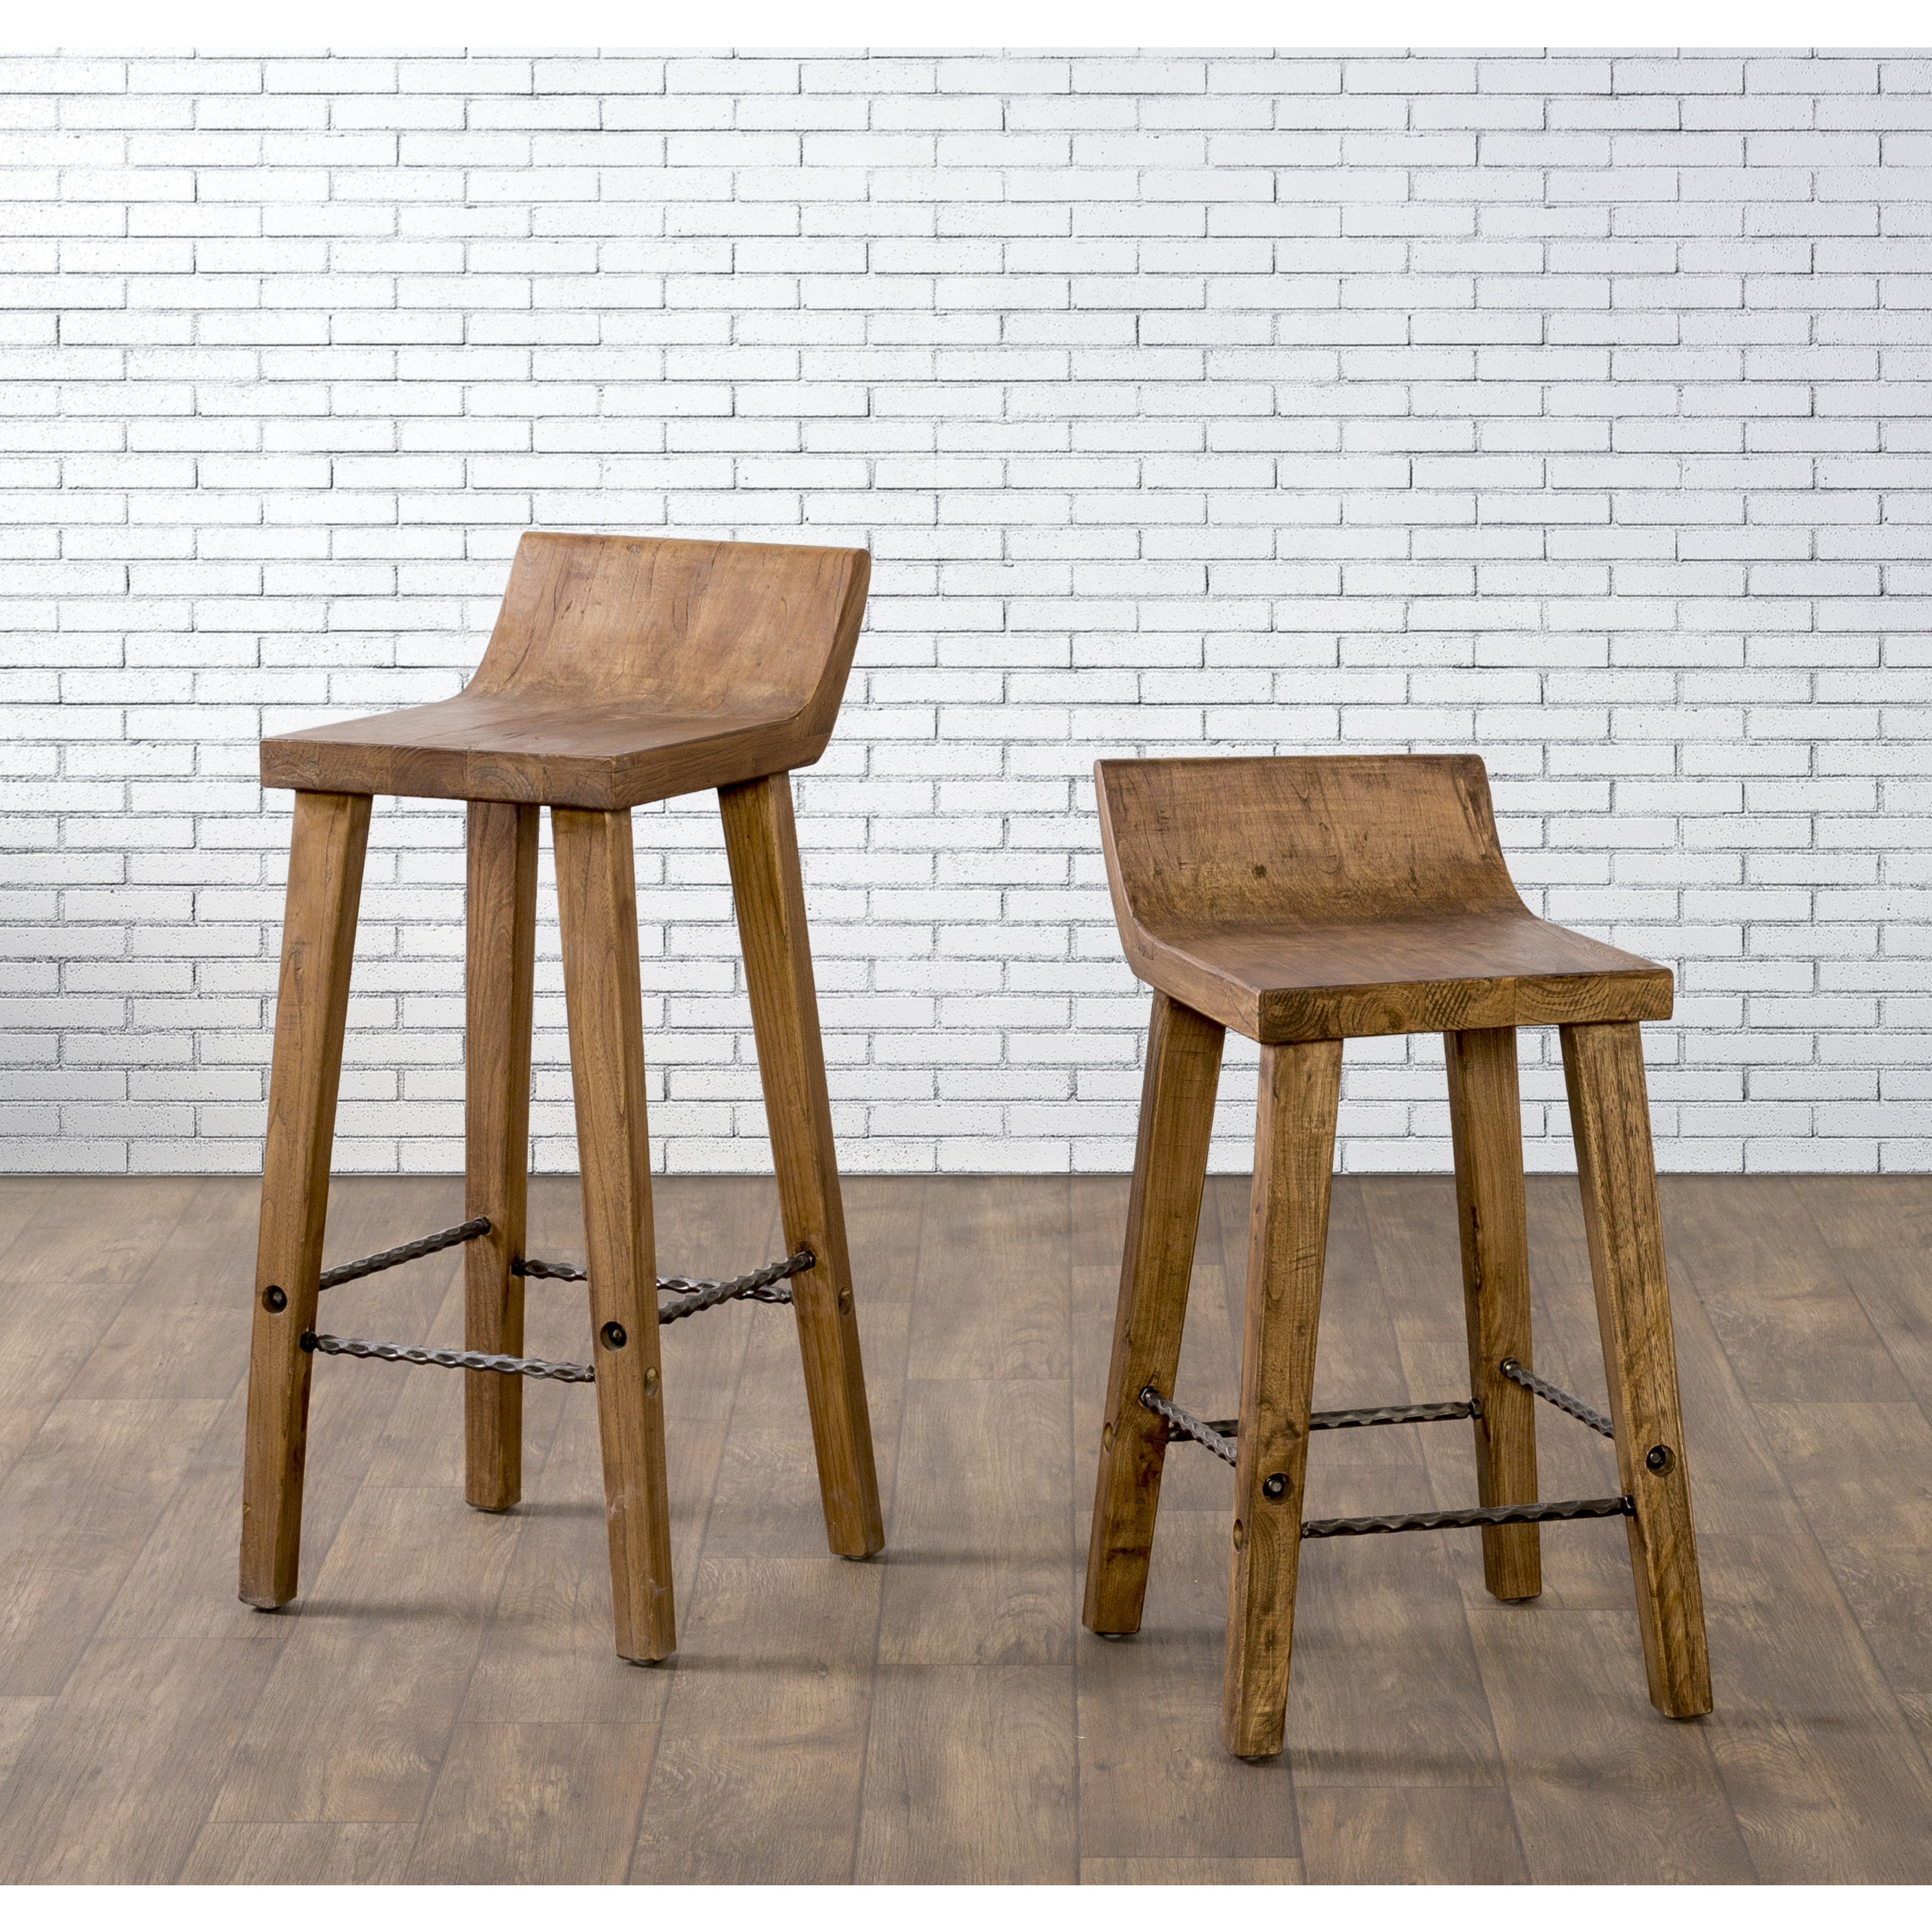 The Gray Barn Gold Creek Natural Elmwood Counter Stool (Bar Height - 29-32 in.)